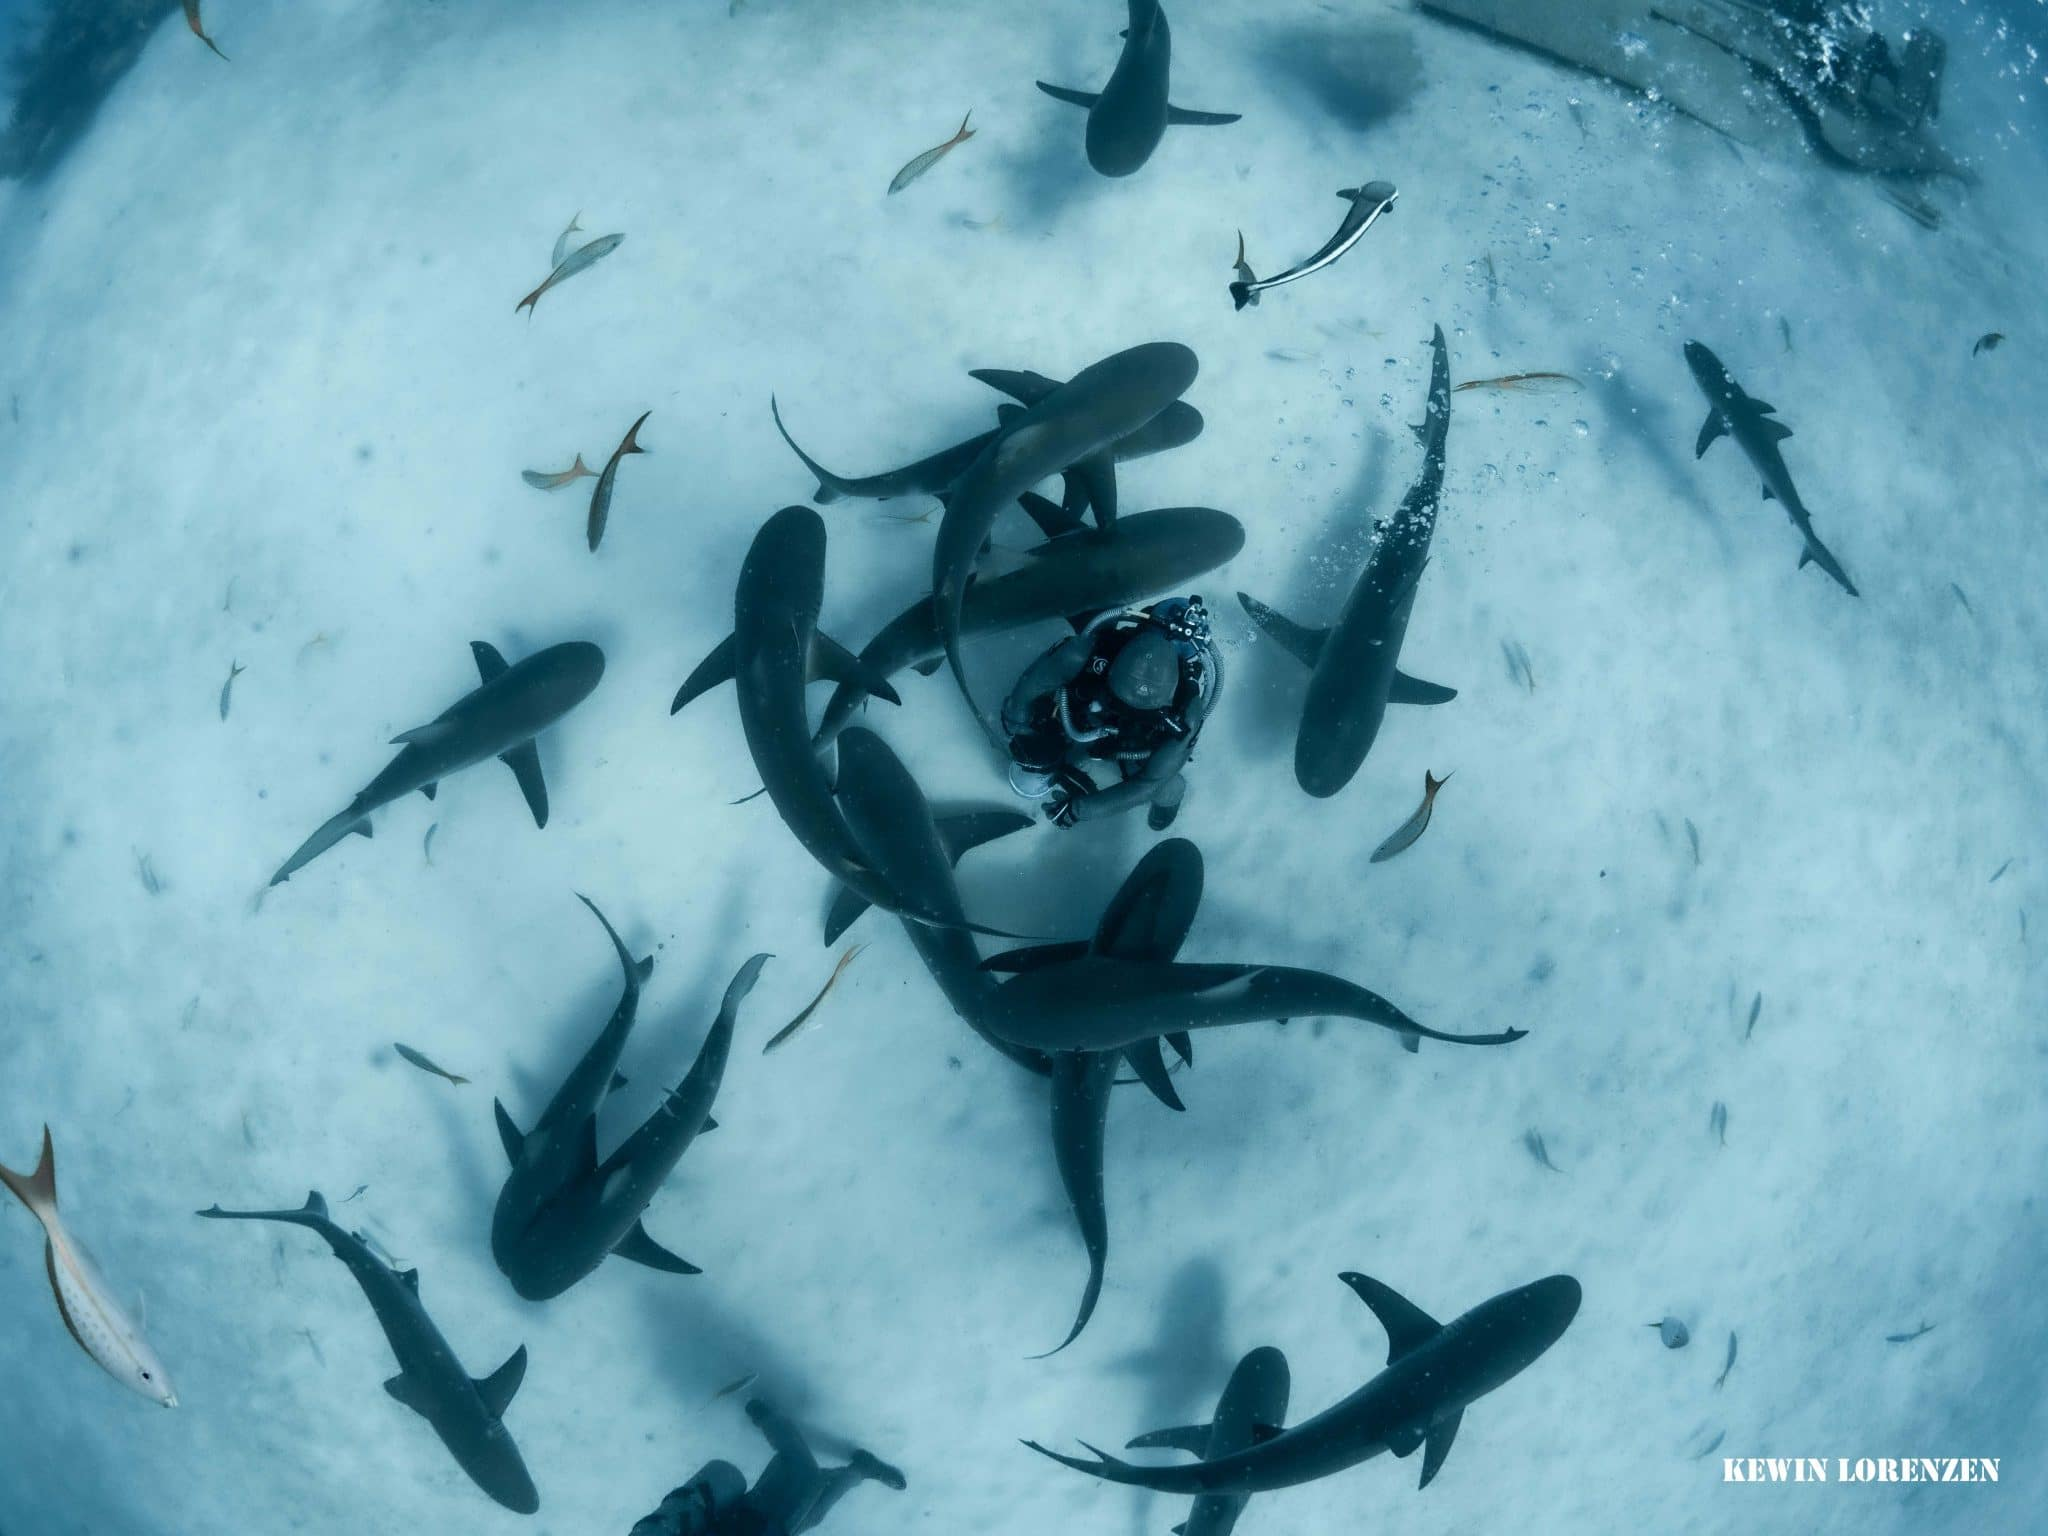 Cristina and her sharks_Image by Kewin Lorenzen